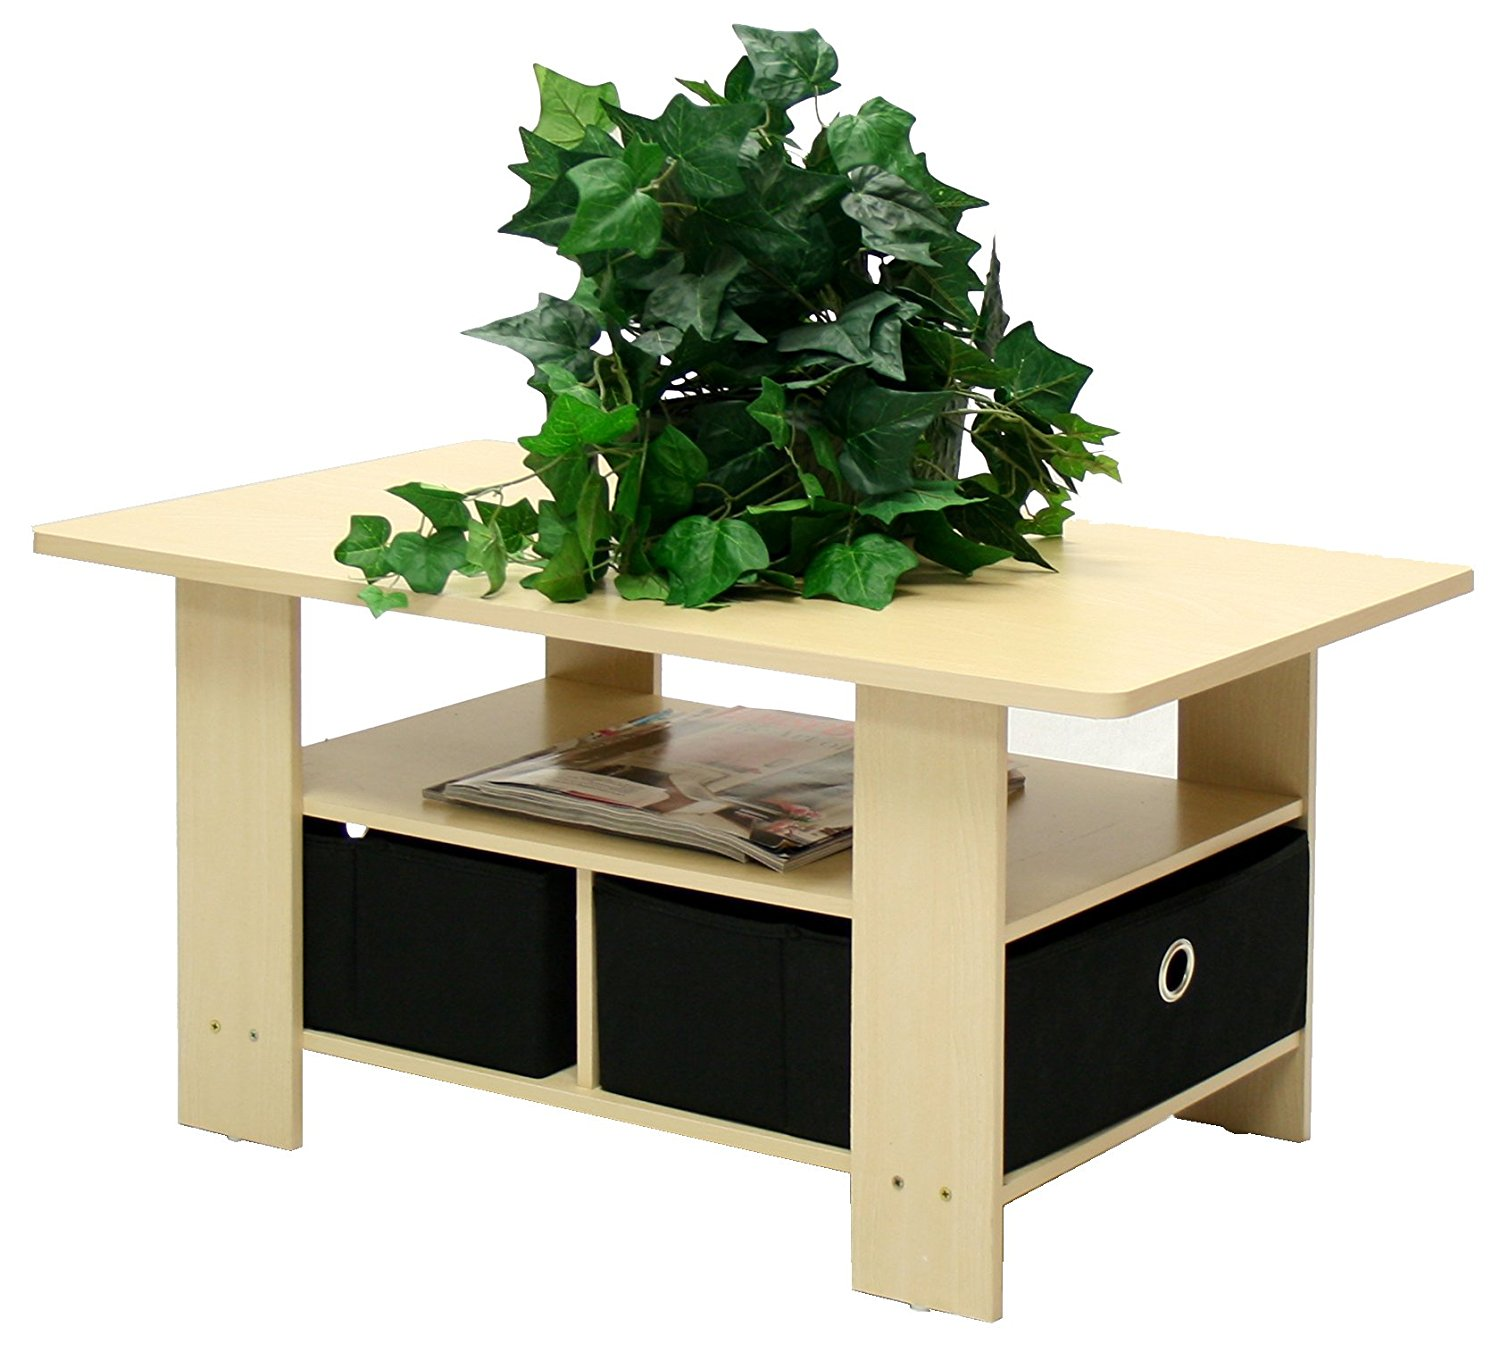 Furinno 11158SBE/BK Coffee Table with Bins, Steam Beech/Black